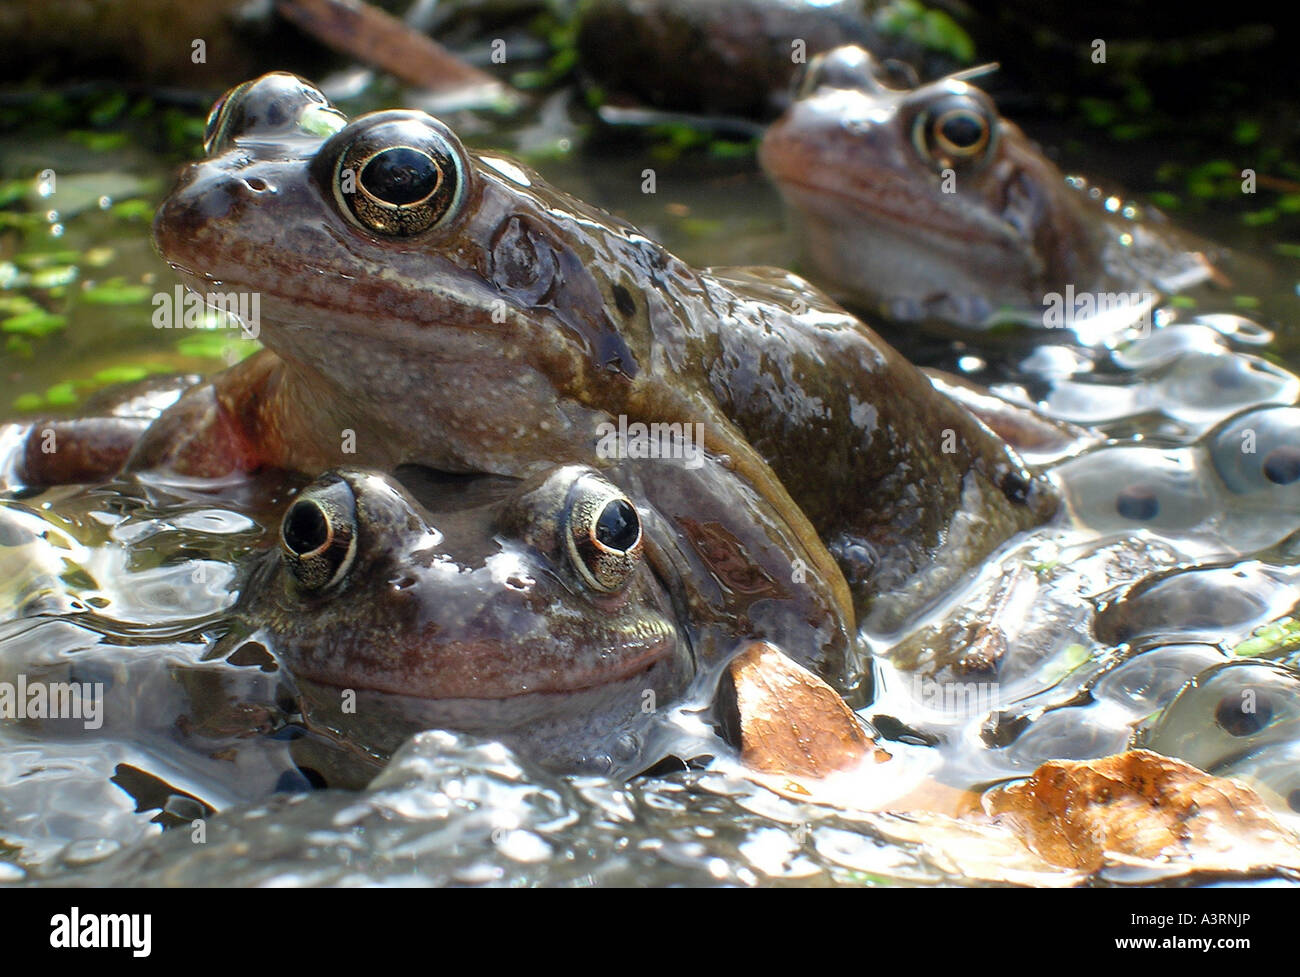 BRITISH FROGS MATING WITH FROGSPAWN RE SRINGTIME SPRING NATURE REPRODUCTION ANIMALS WILDLIFE TADPOLES TOADS WILDLIFE - Stock Image